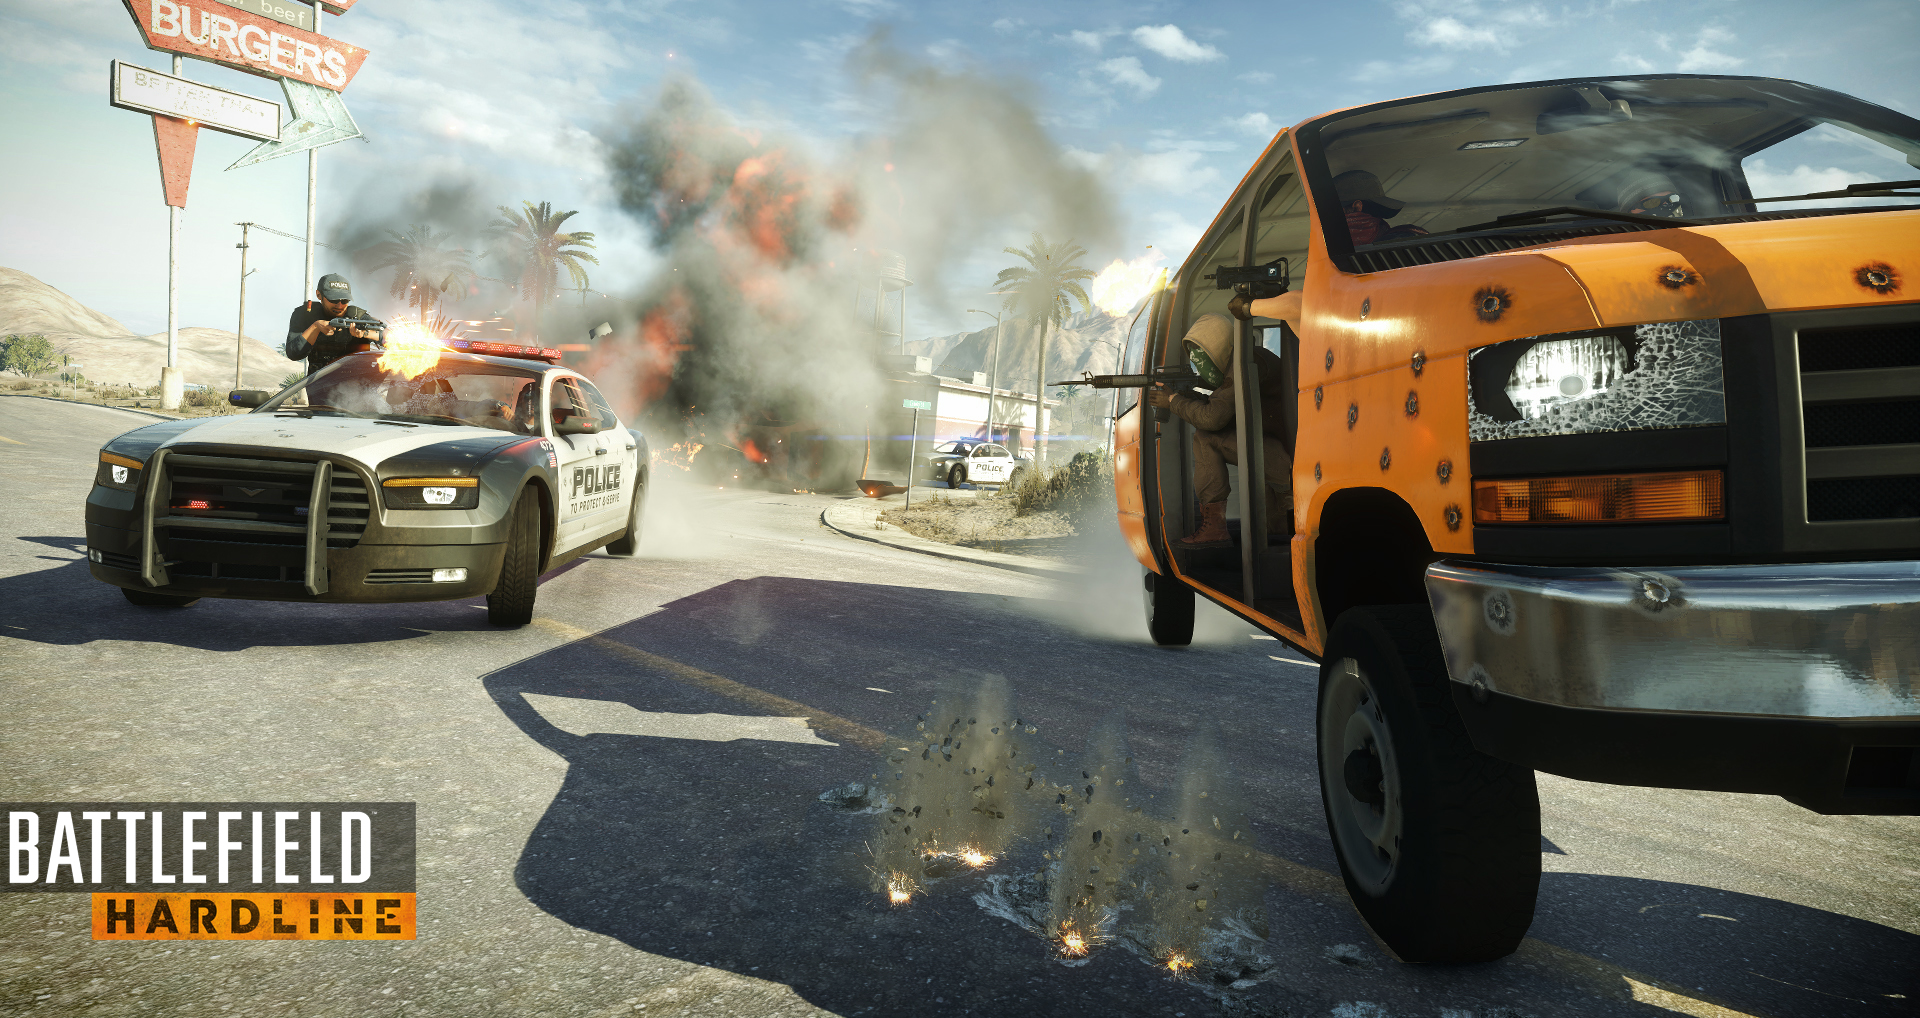 Here are Battlefield Hardline's PC system requirements